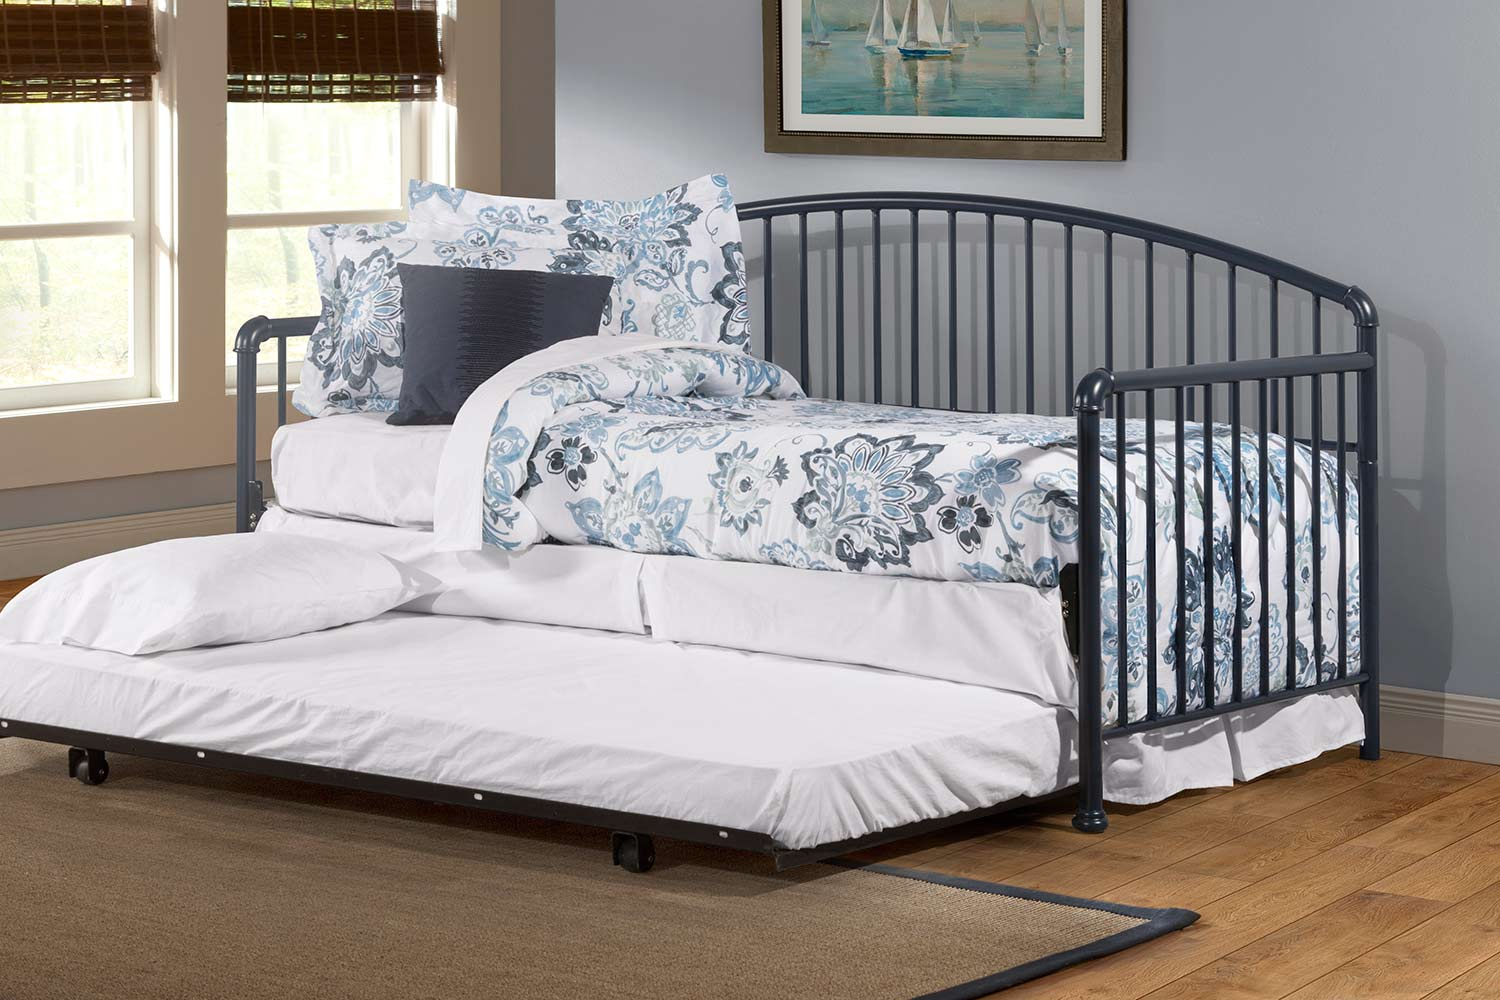 Hillsdale Brandi Daybed with Trundle - Navy